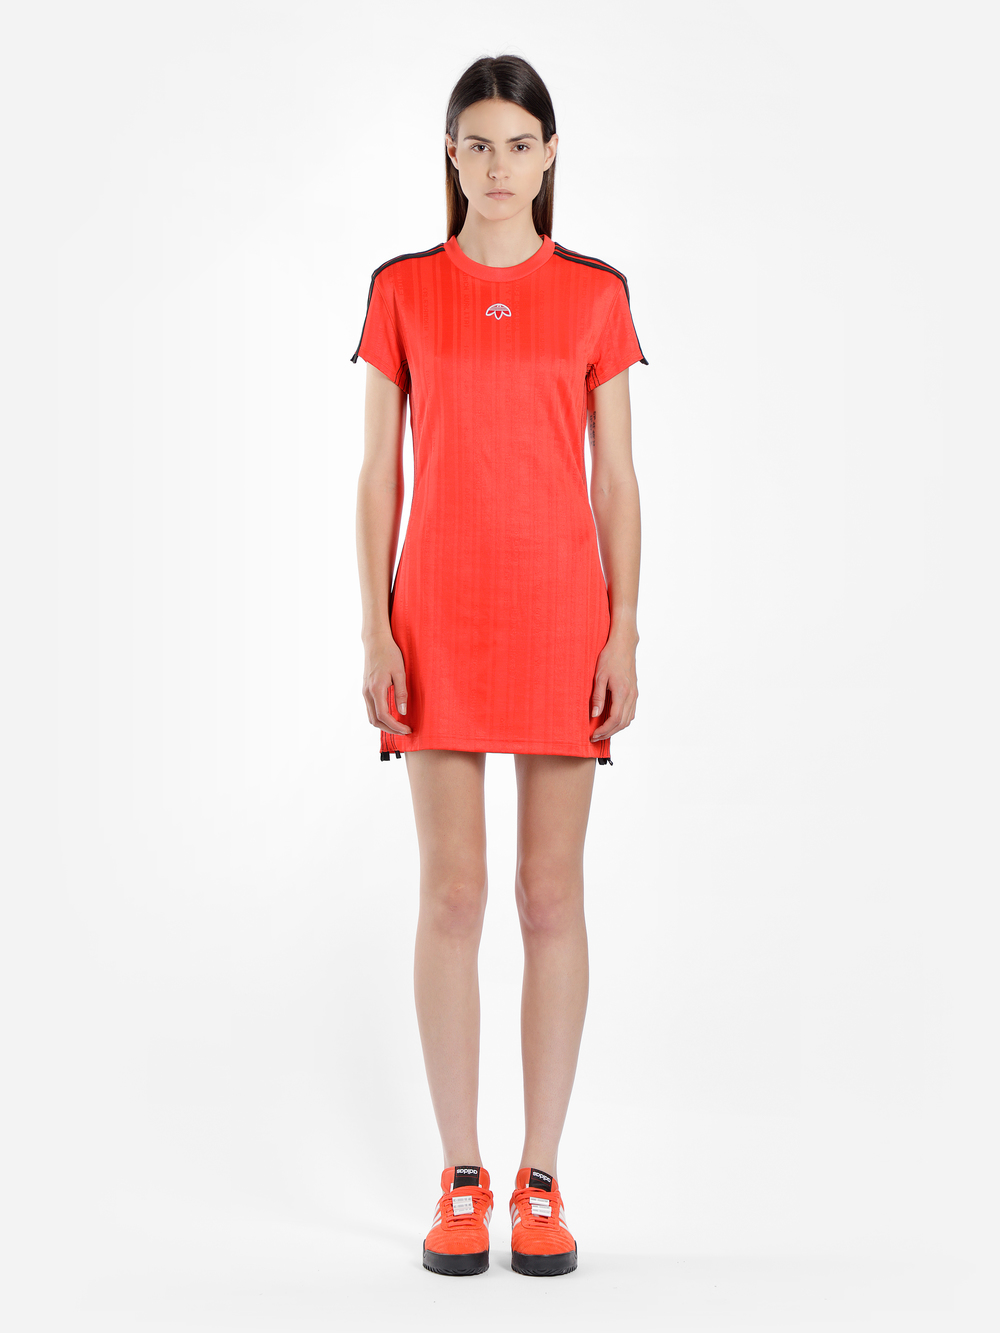 20dbf2391a2 Adidas Originals By Alexander Wang Adidas By Alexander Wang Dresses In Red